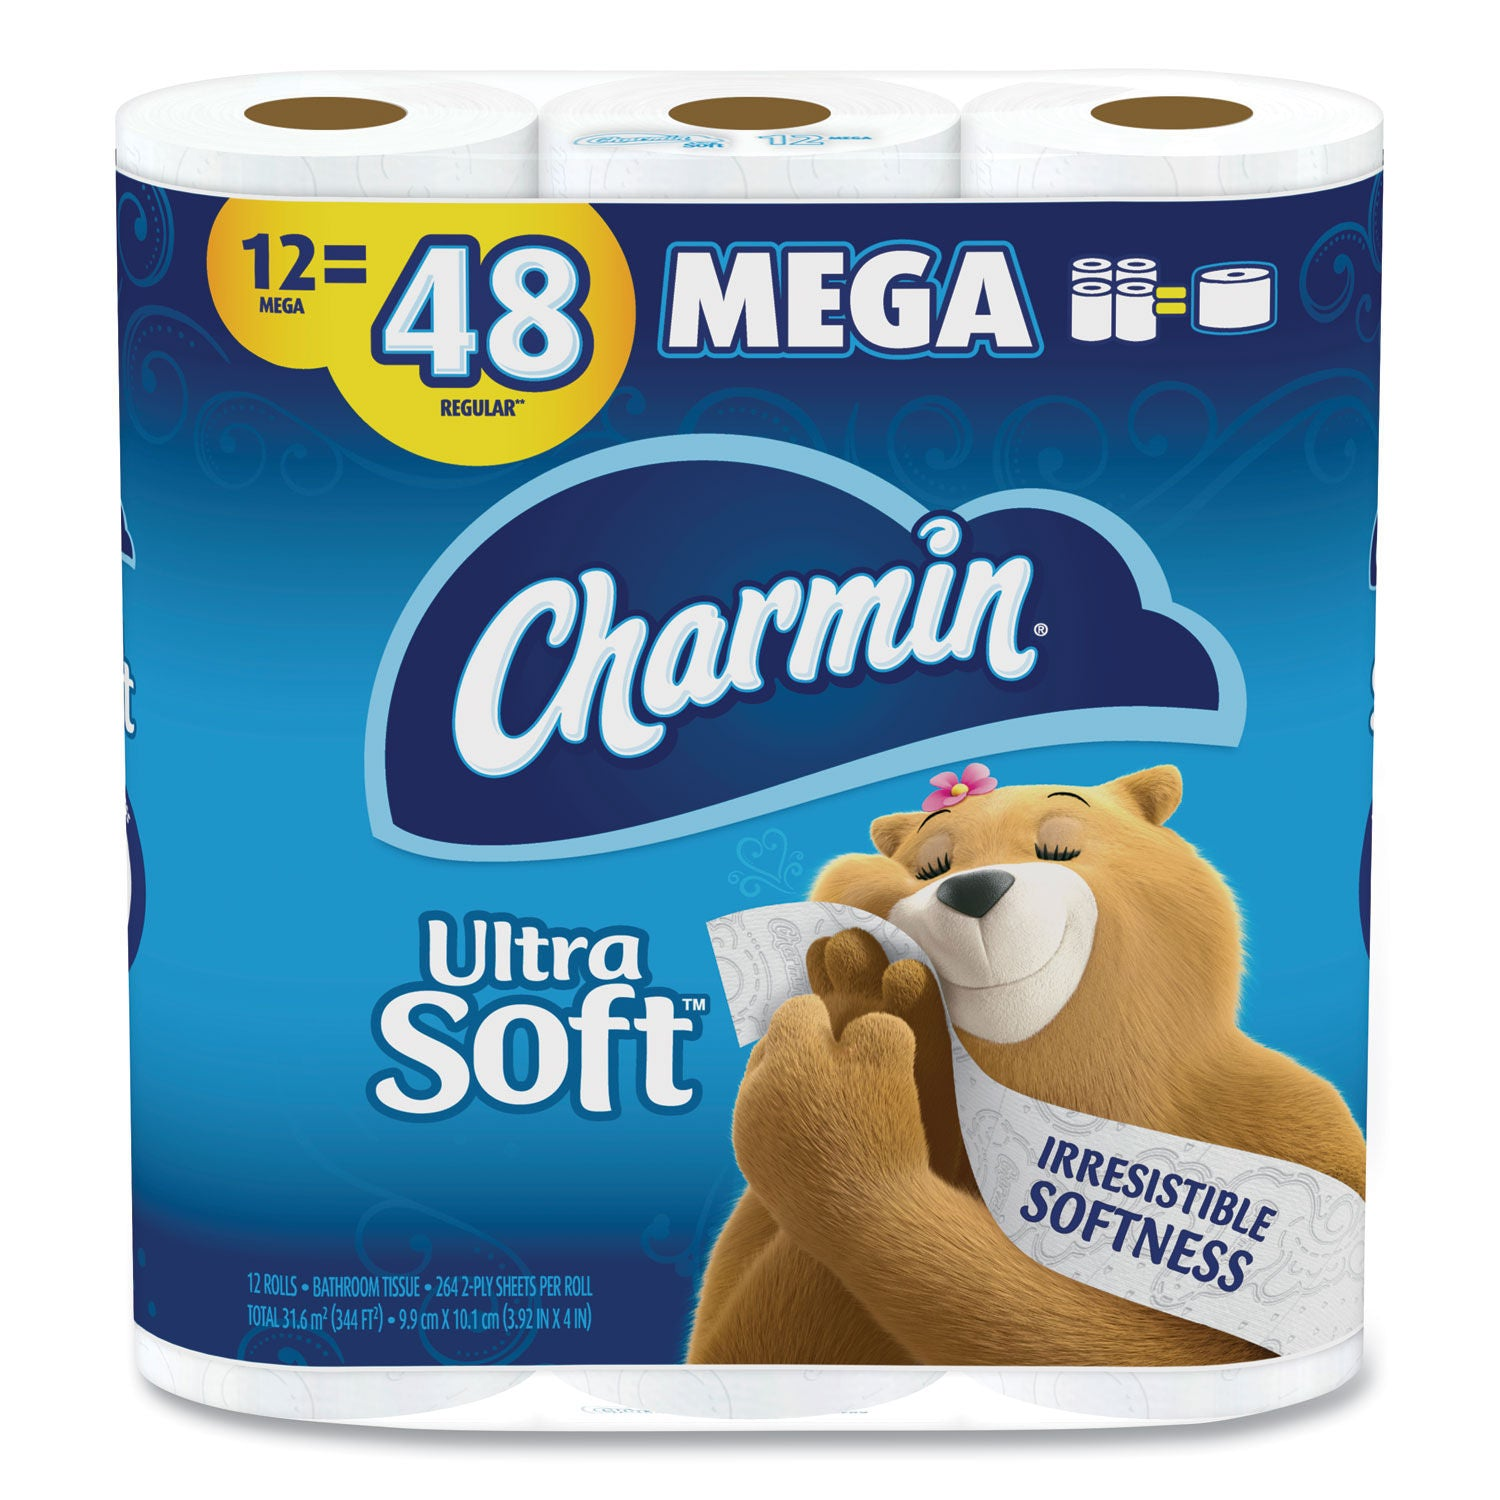 Charmin Ultra Soft Toilet Paper, Septic Safe, 2-Ply, White, 4 X 3.92, 264 Sheets/Roll, 24 Rolls/Carton - PGC79546-24